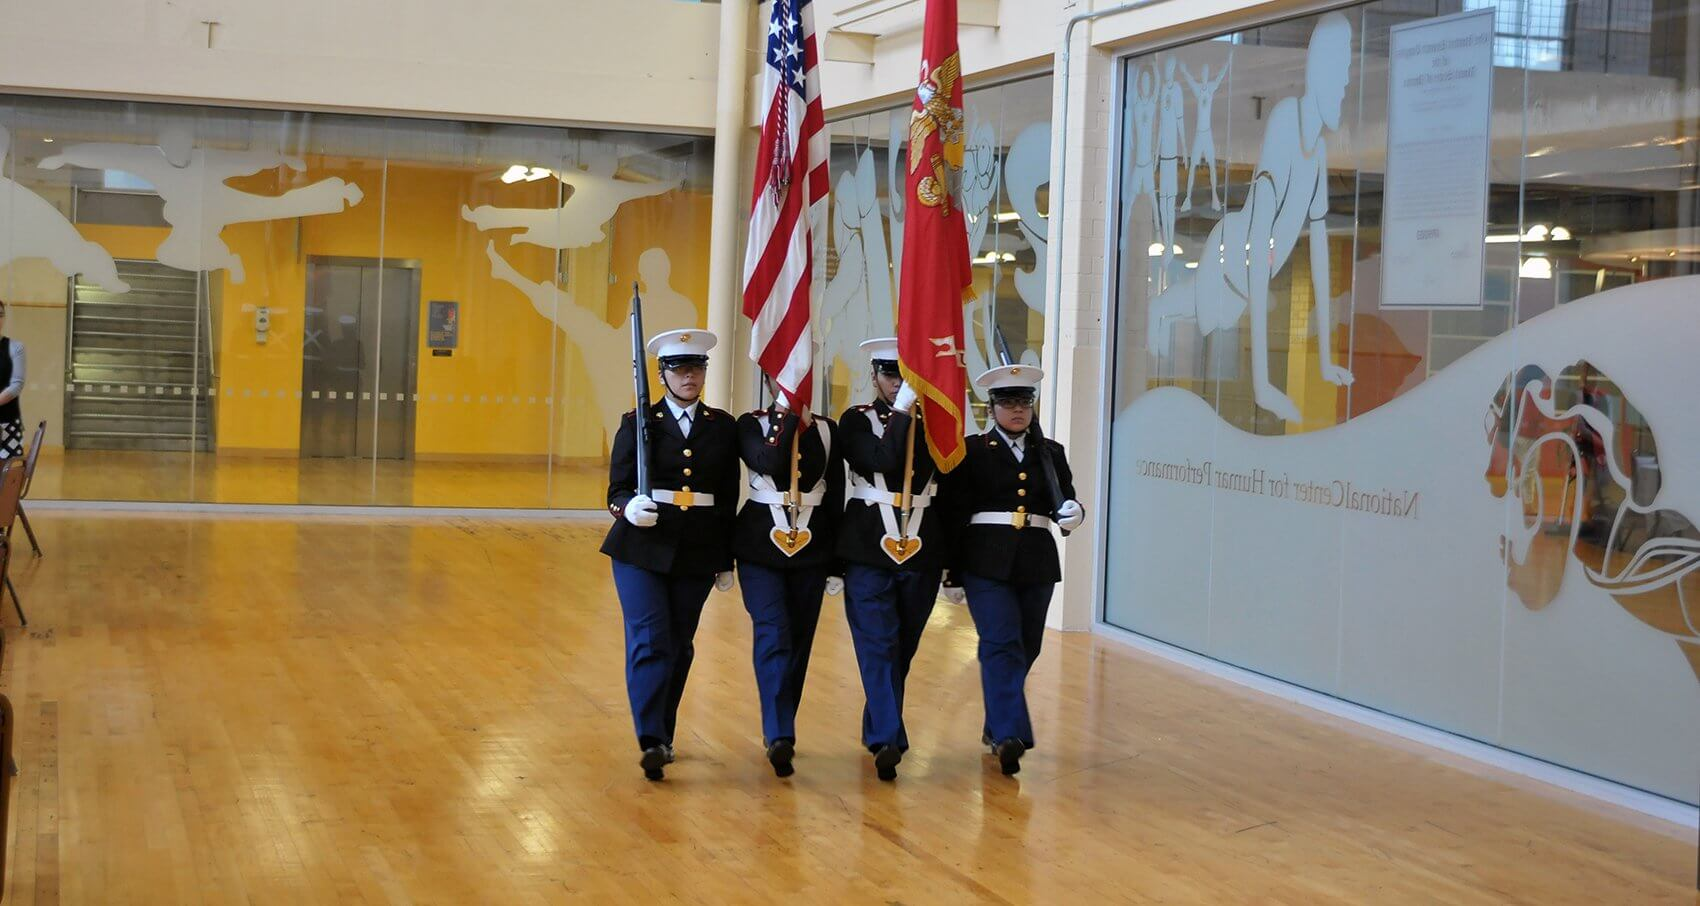 Local Marine Corps Junior ROTC members presented the colors.